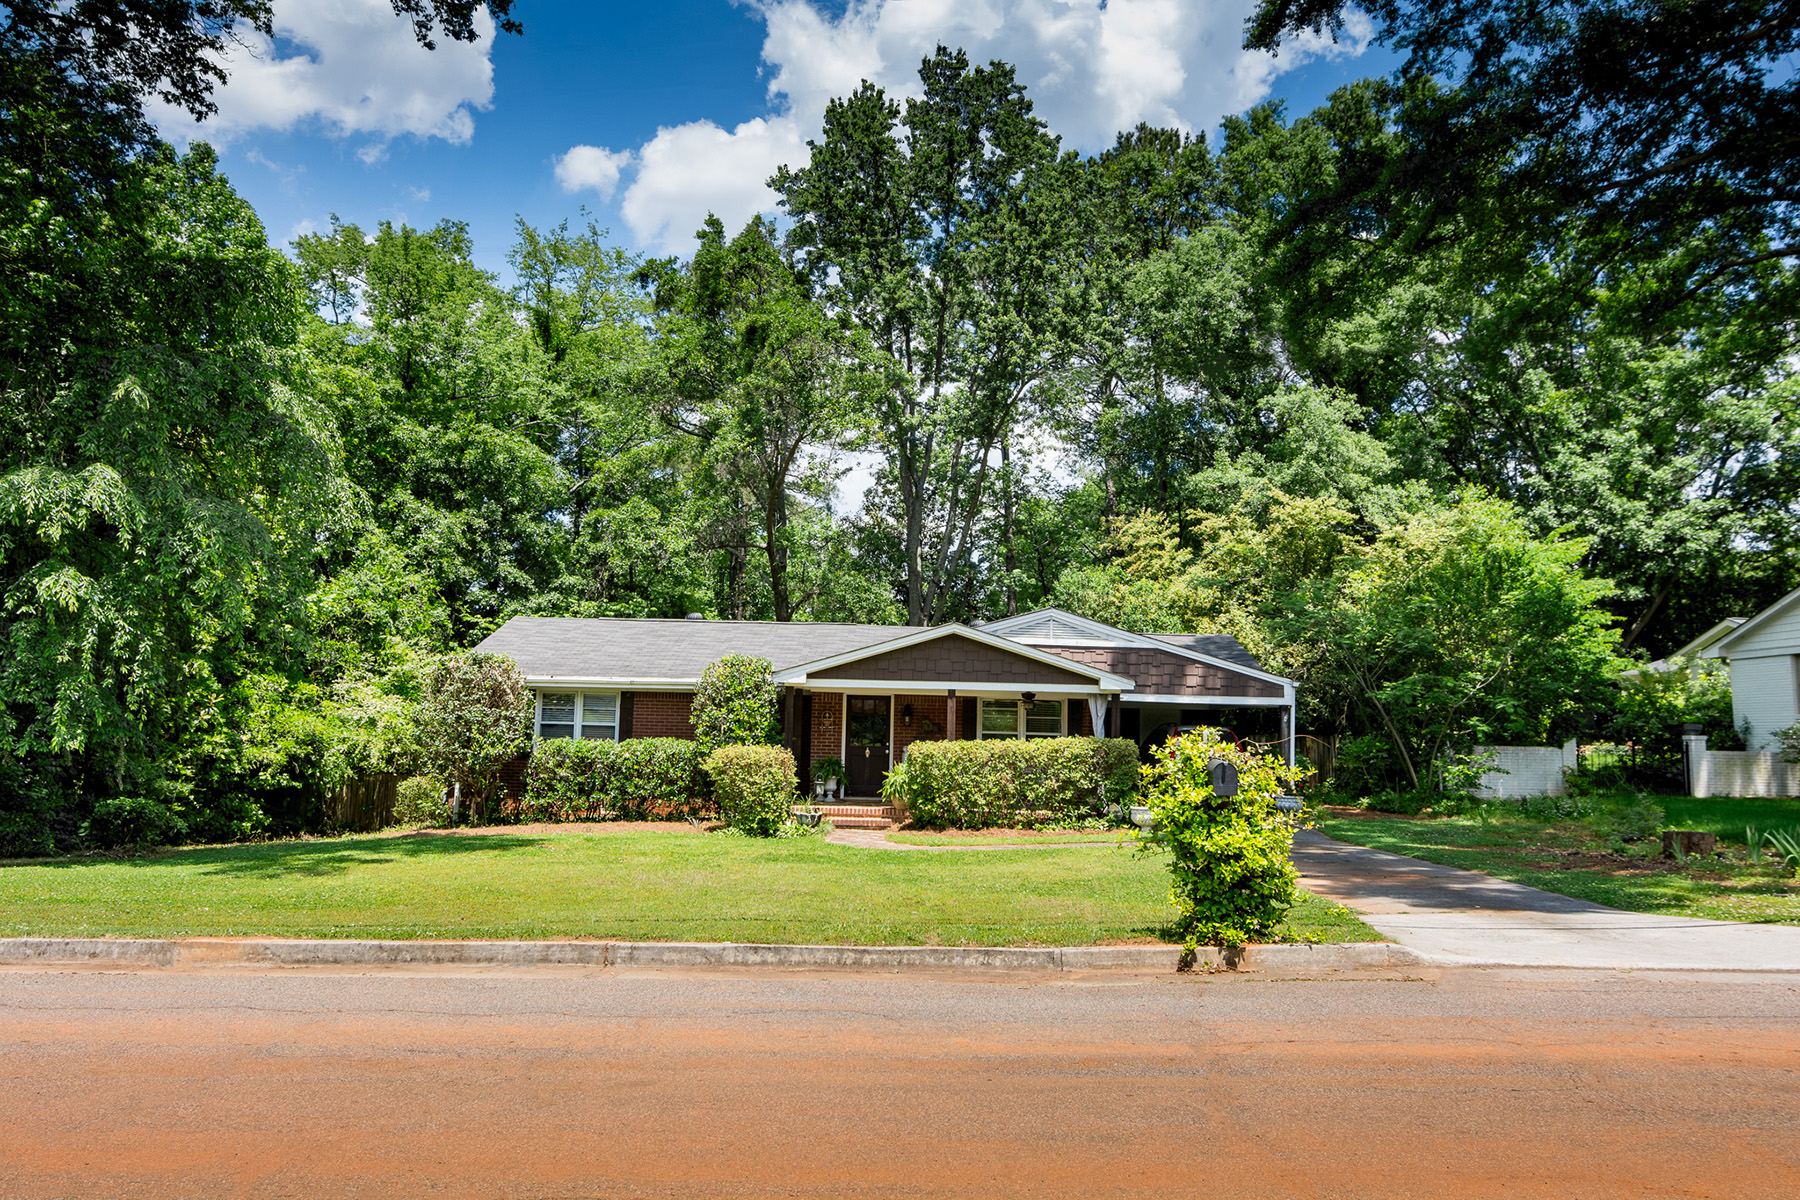 Single Family Home for Sale at Ready For Your Renovators And Builders in Smyrna Heights! 1239 Hayes Dr Smyrna, Georgia 30080 United States